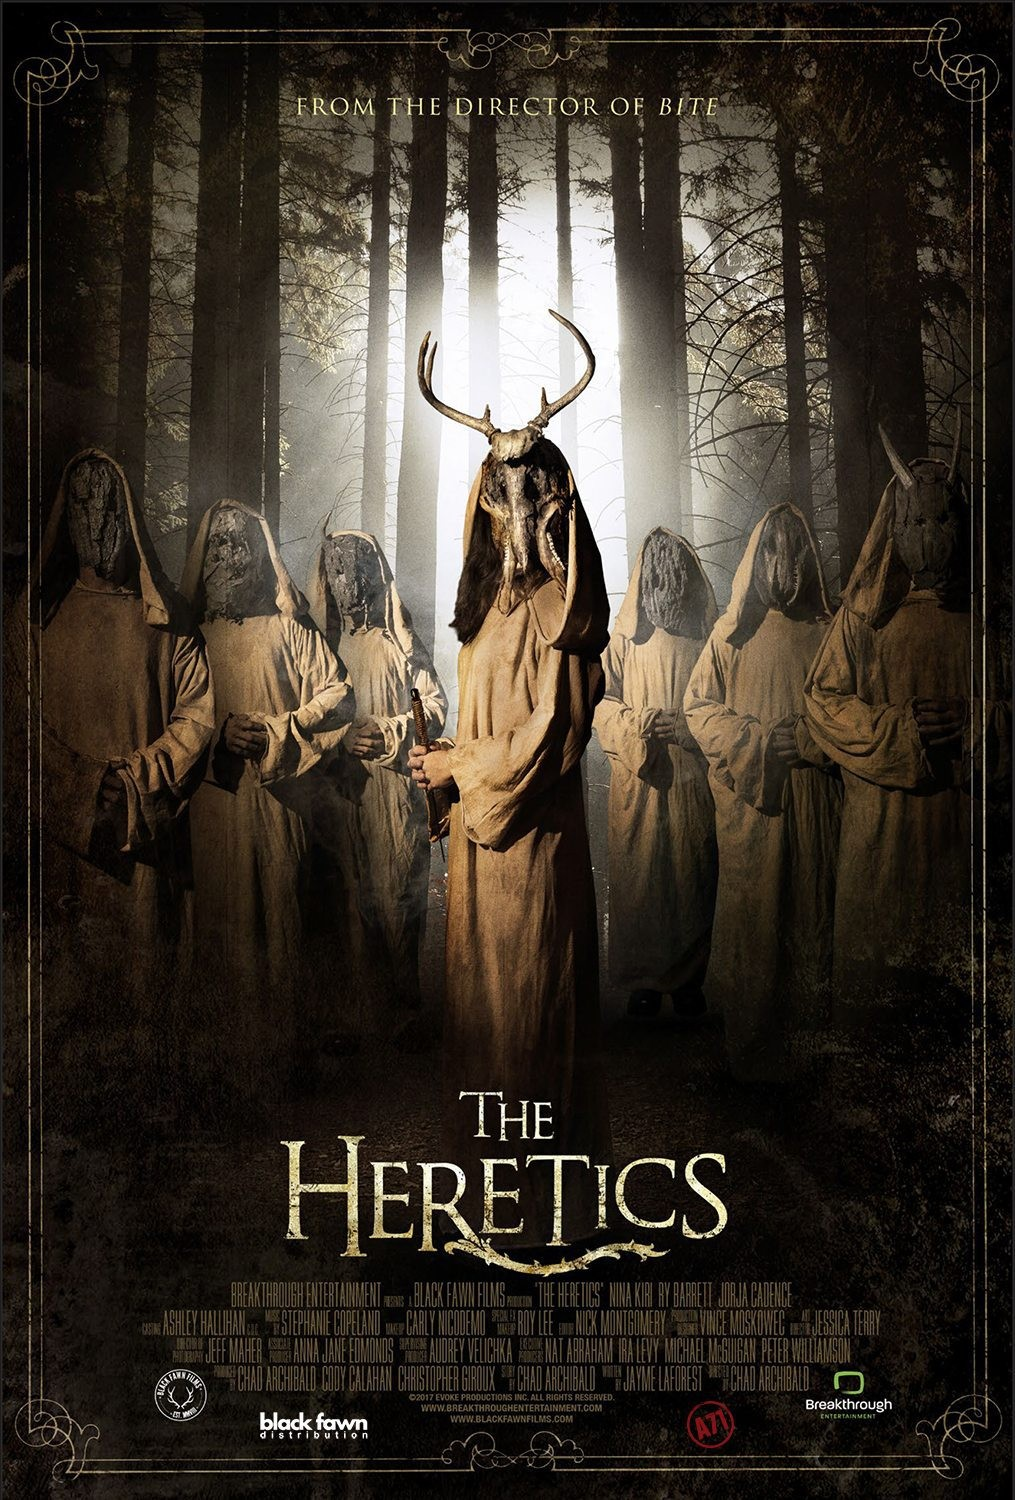 the heretics 2017 full movie download